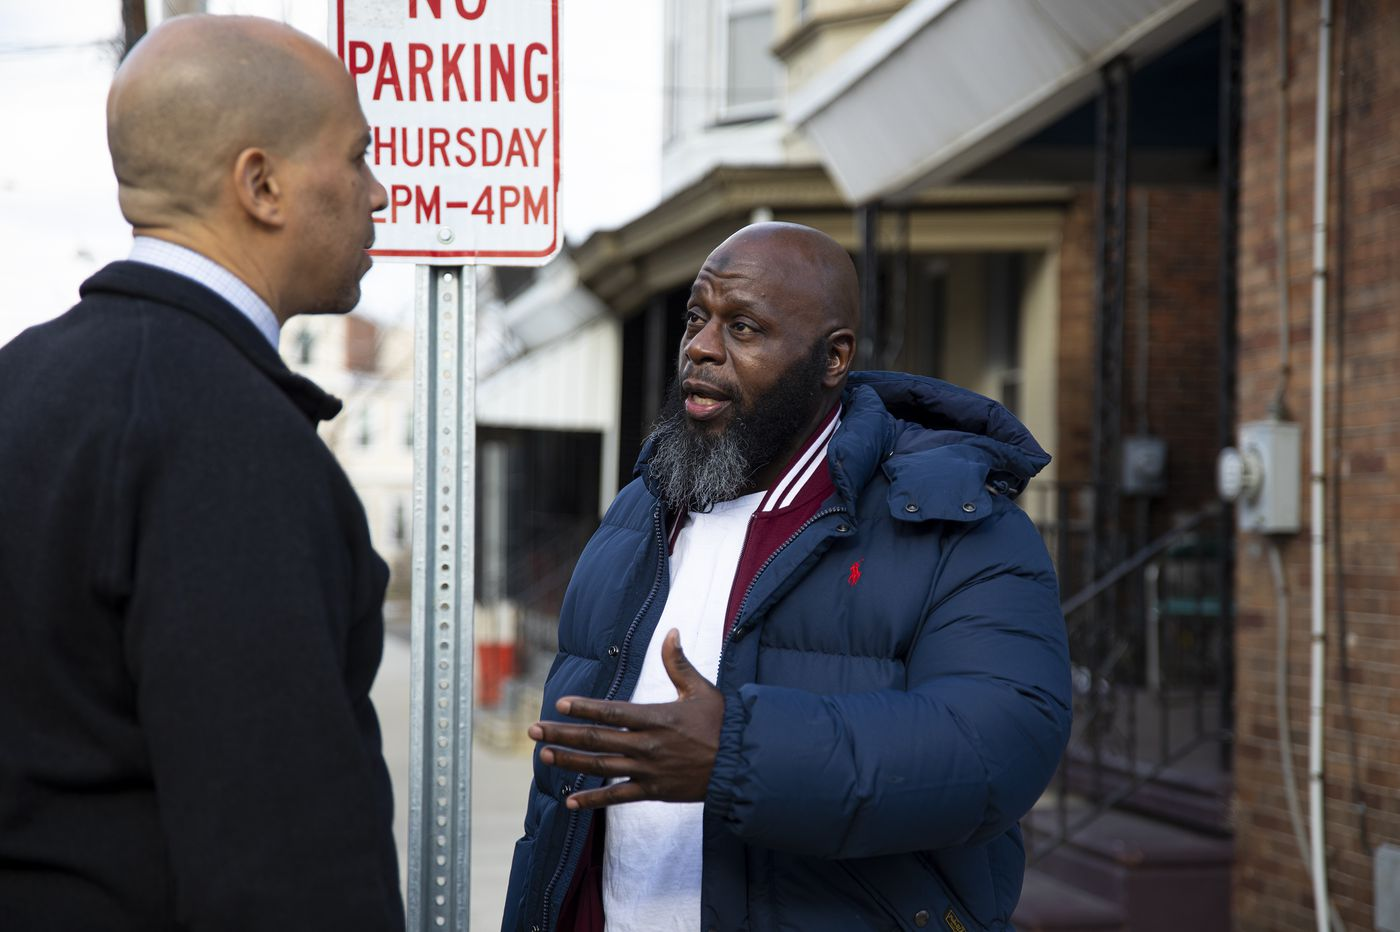 Cory Booker visits a Camden rowhouse to meet N.J. man released early from federal prison under new law